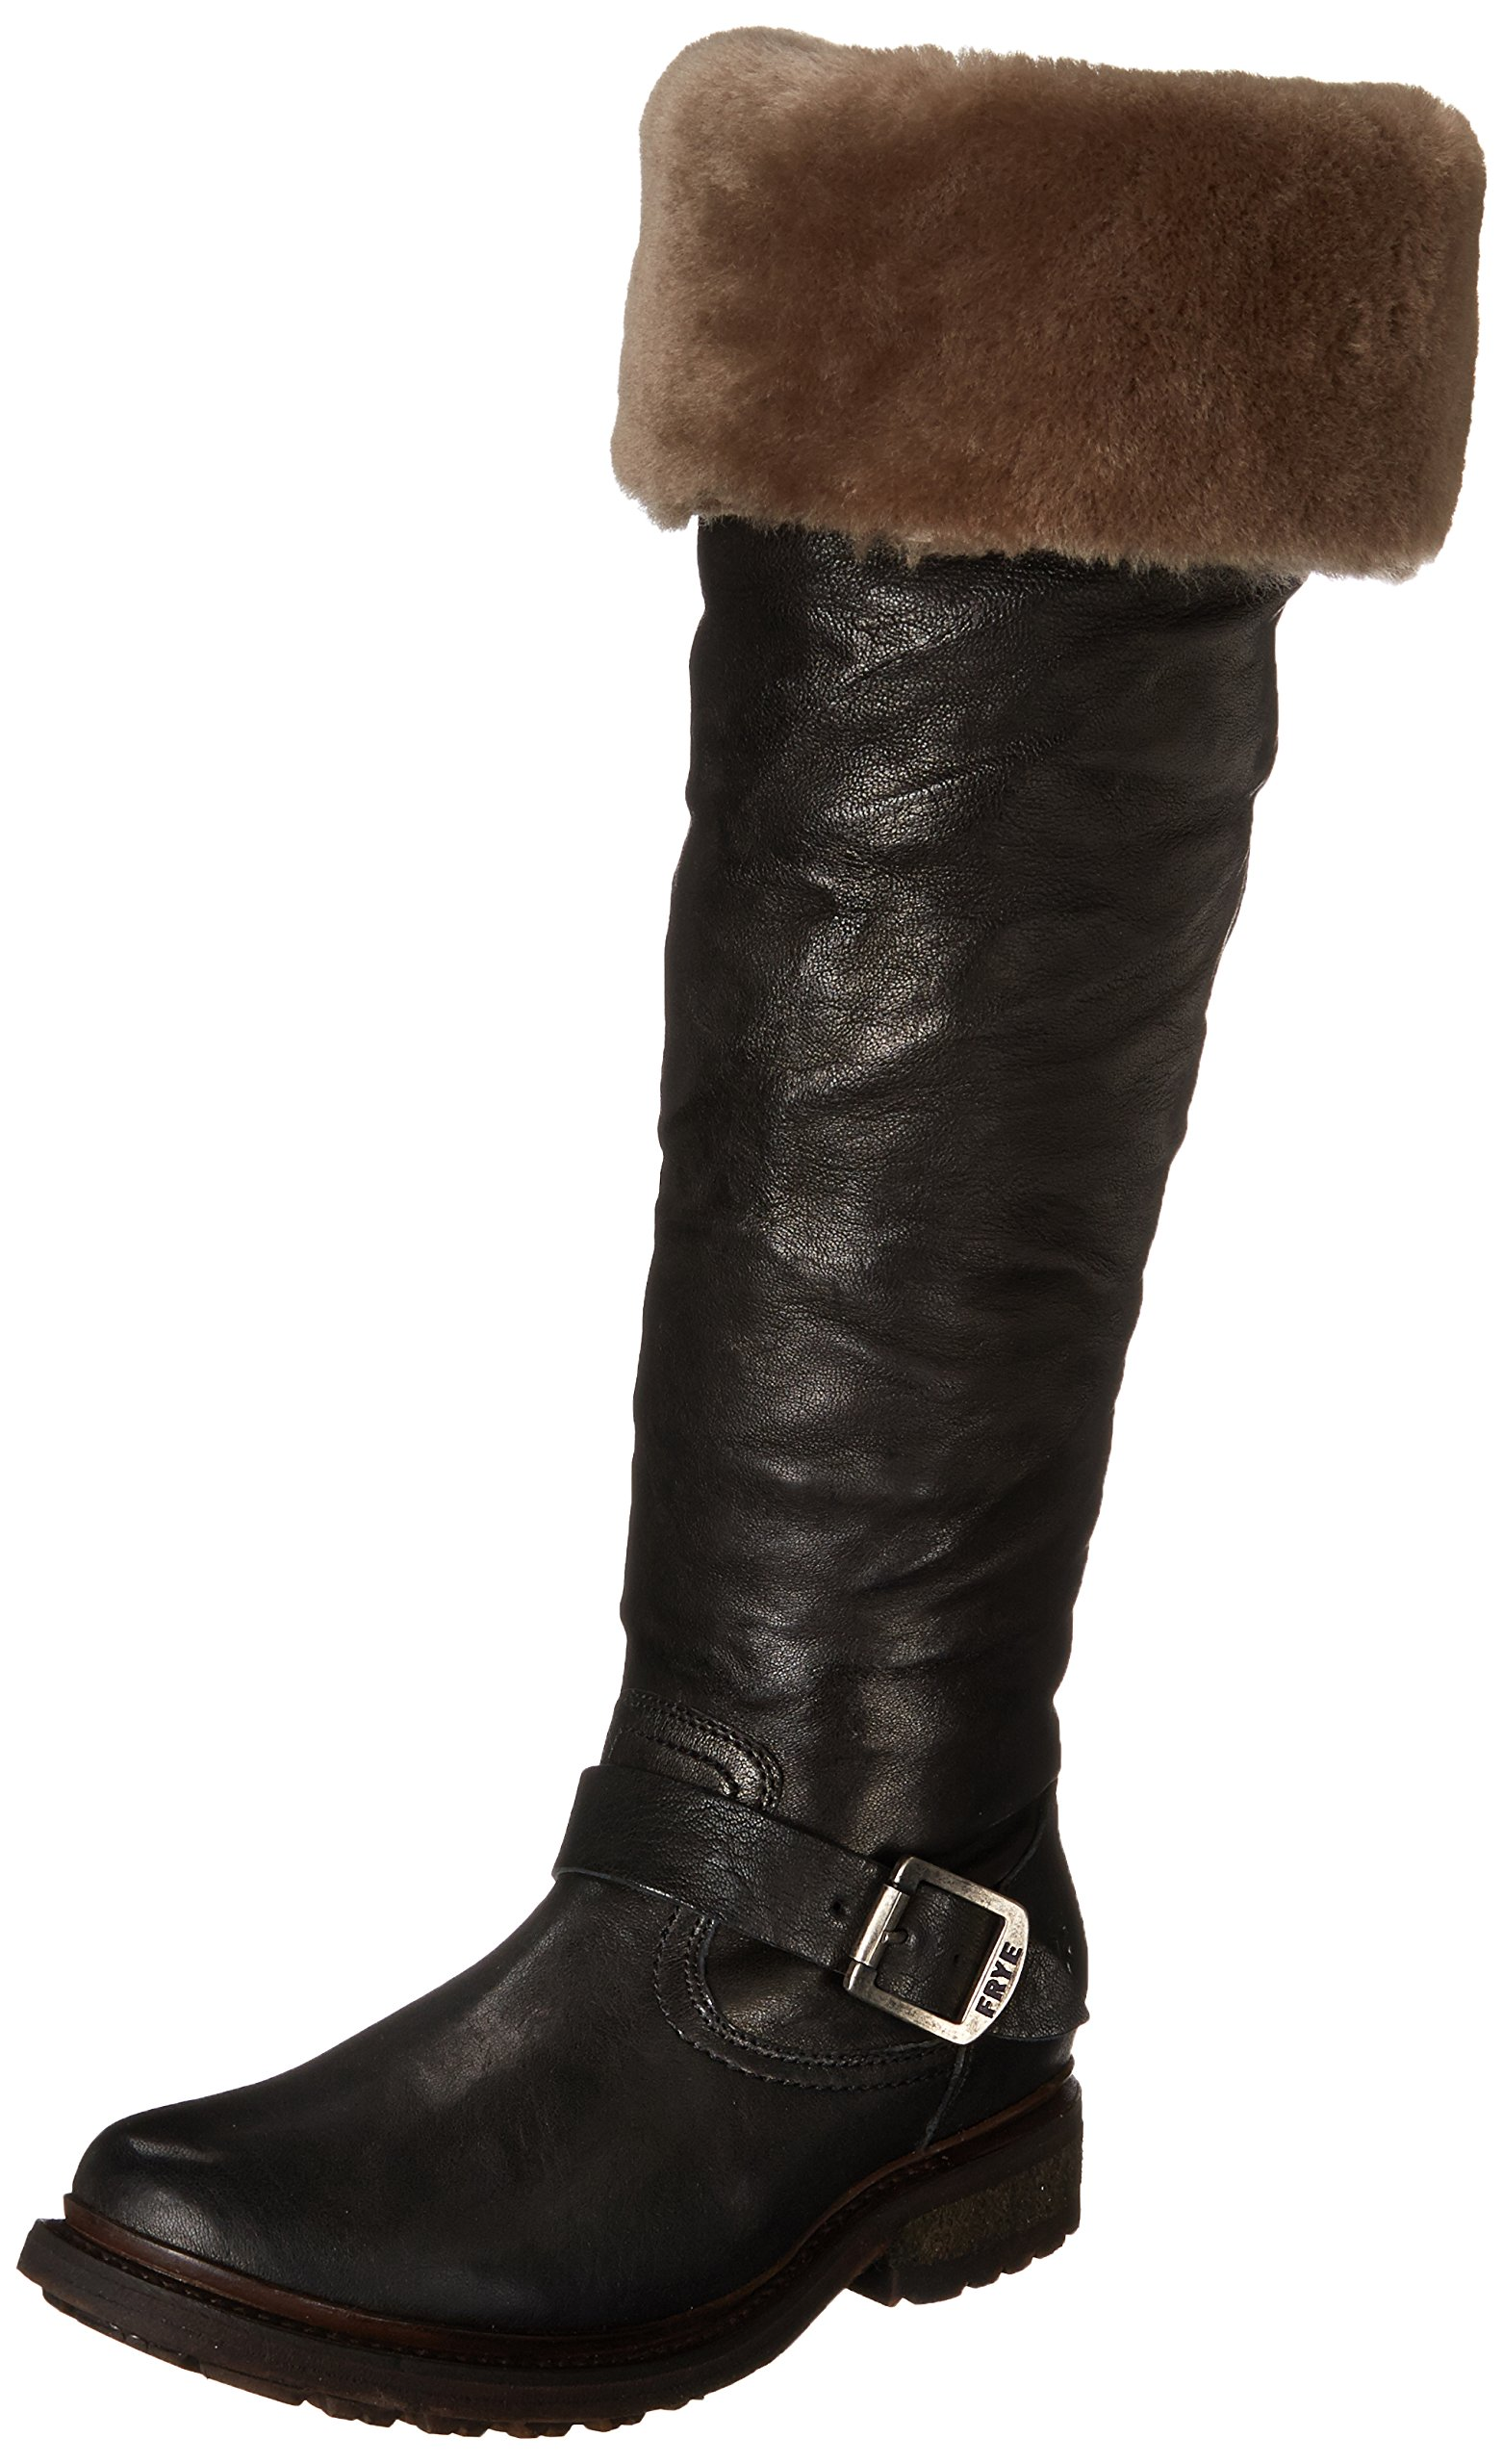 FRYE Women's Valerie Sherling Over The Knee Riding Boot, Black, 7.5 M US